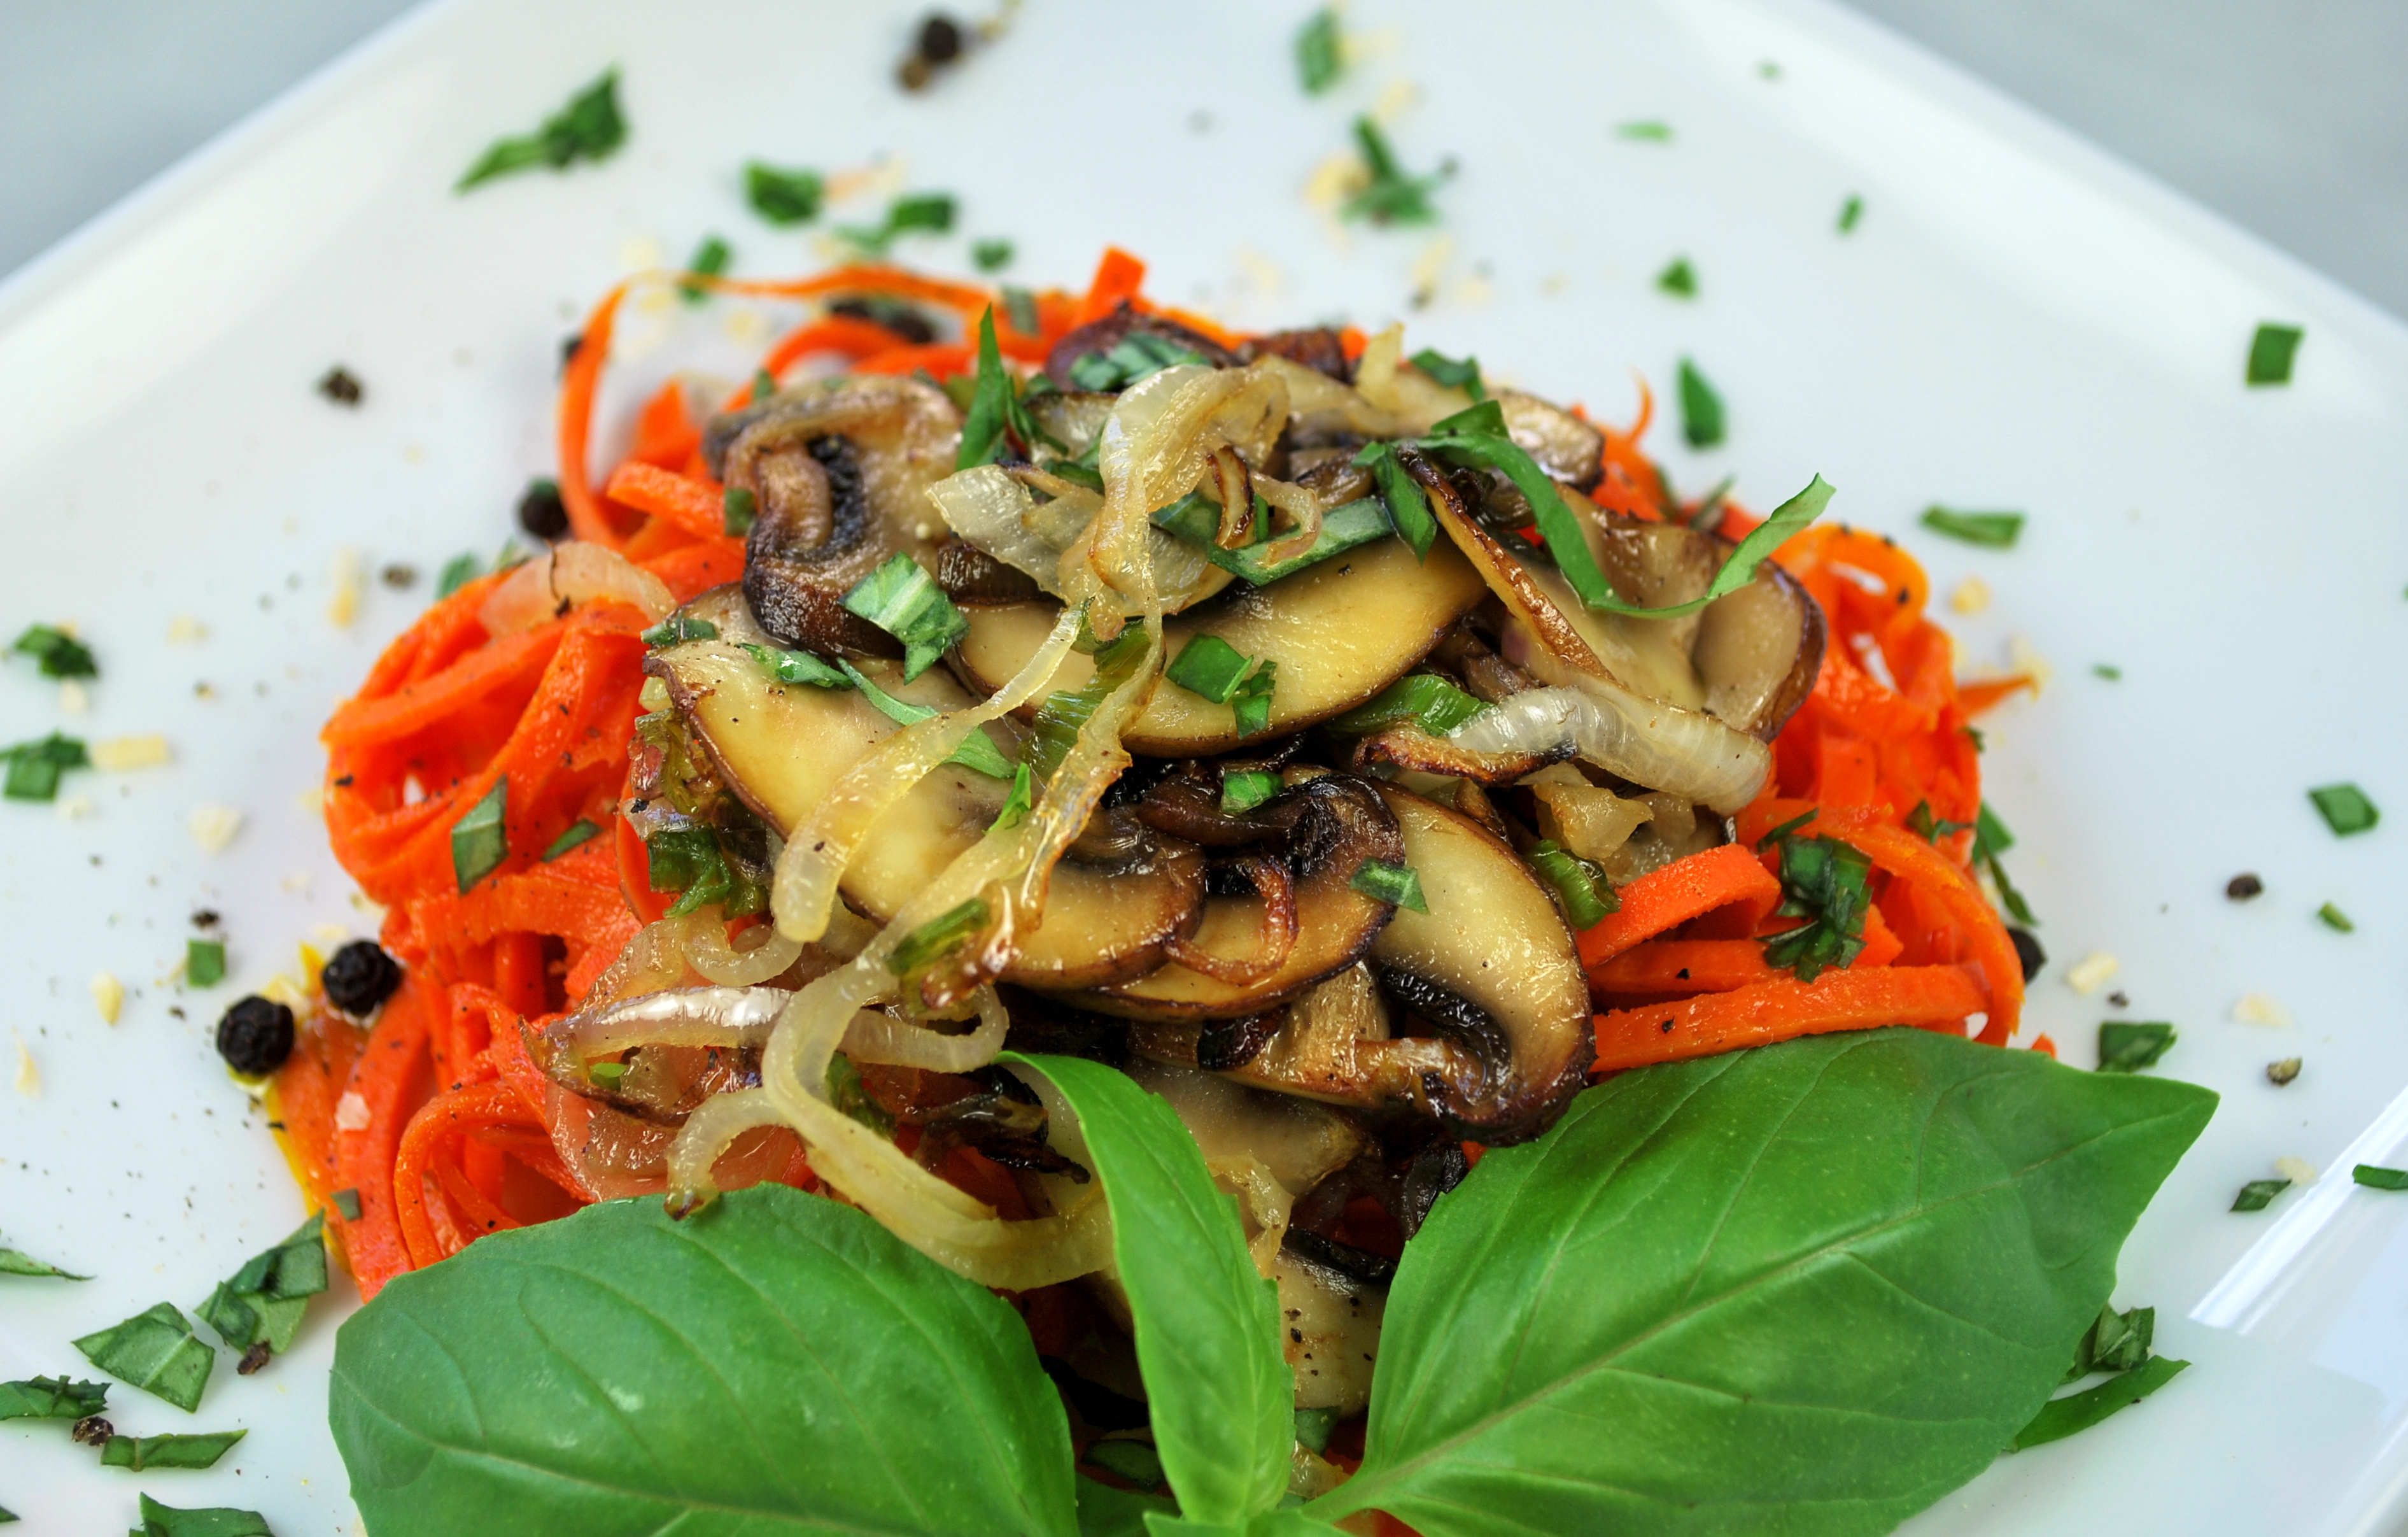 spiralizing recipes - paleo, sides - carrot pasta with mushroom sauce